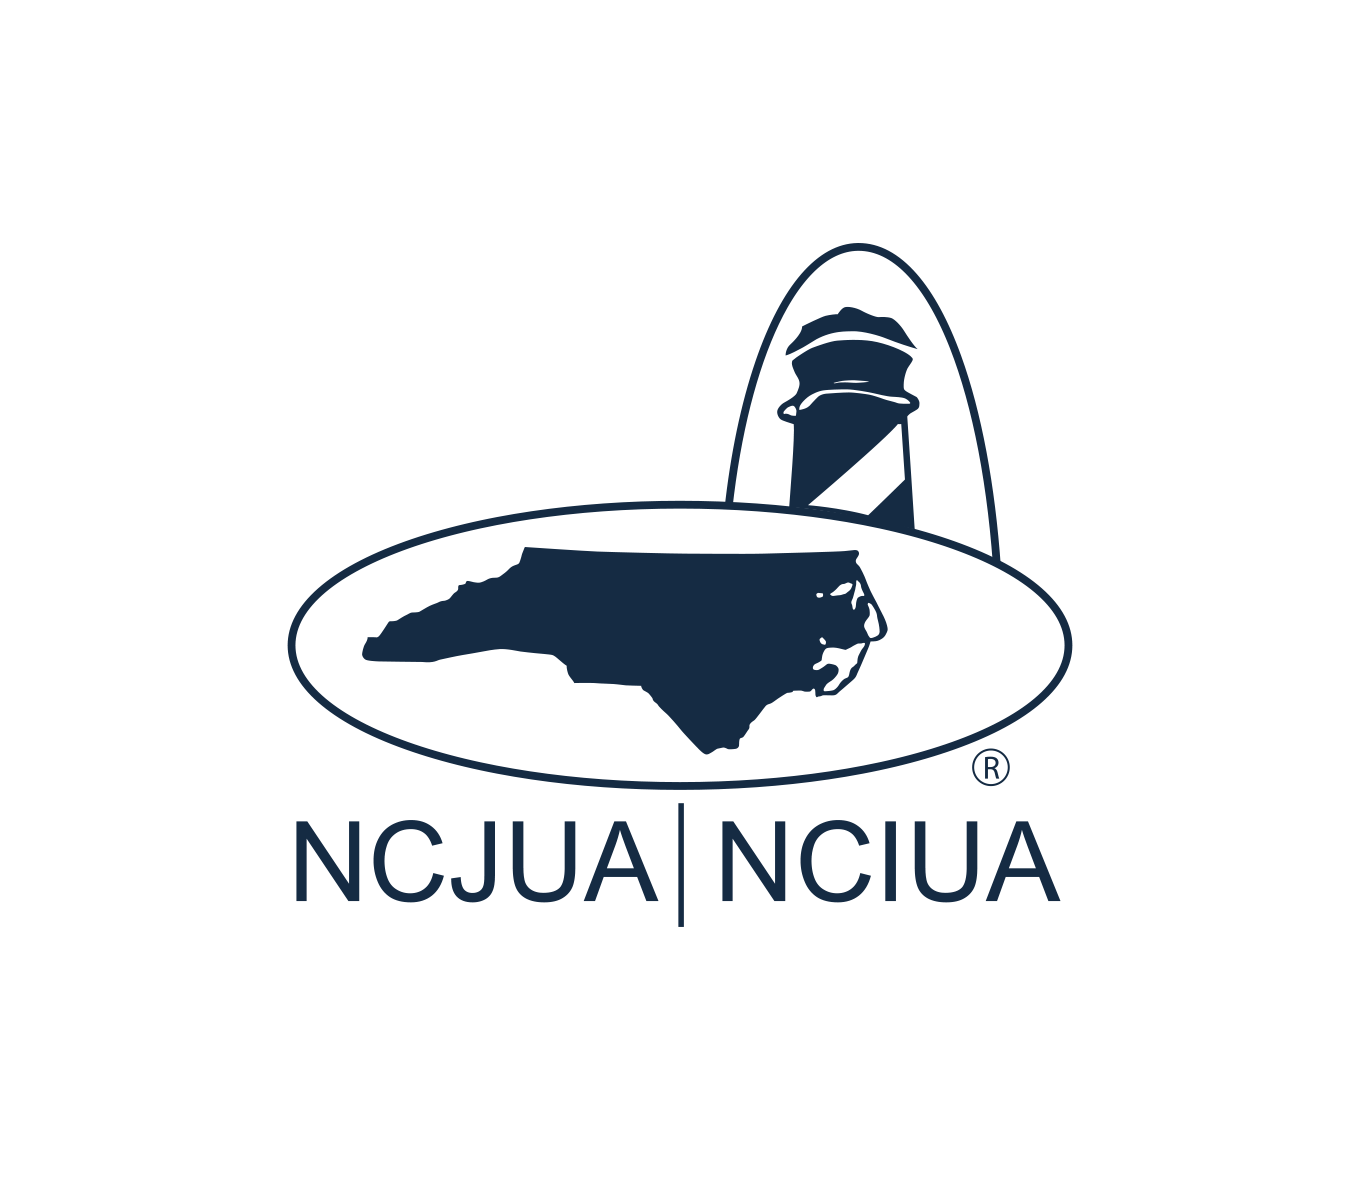 NC Joint Underwriting Association Customer Logo